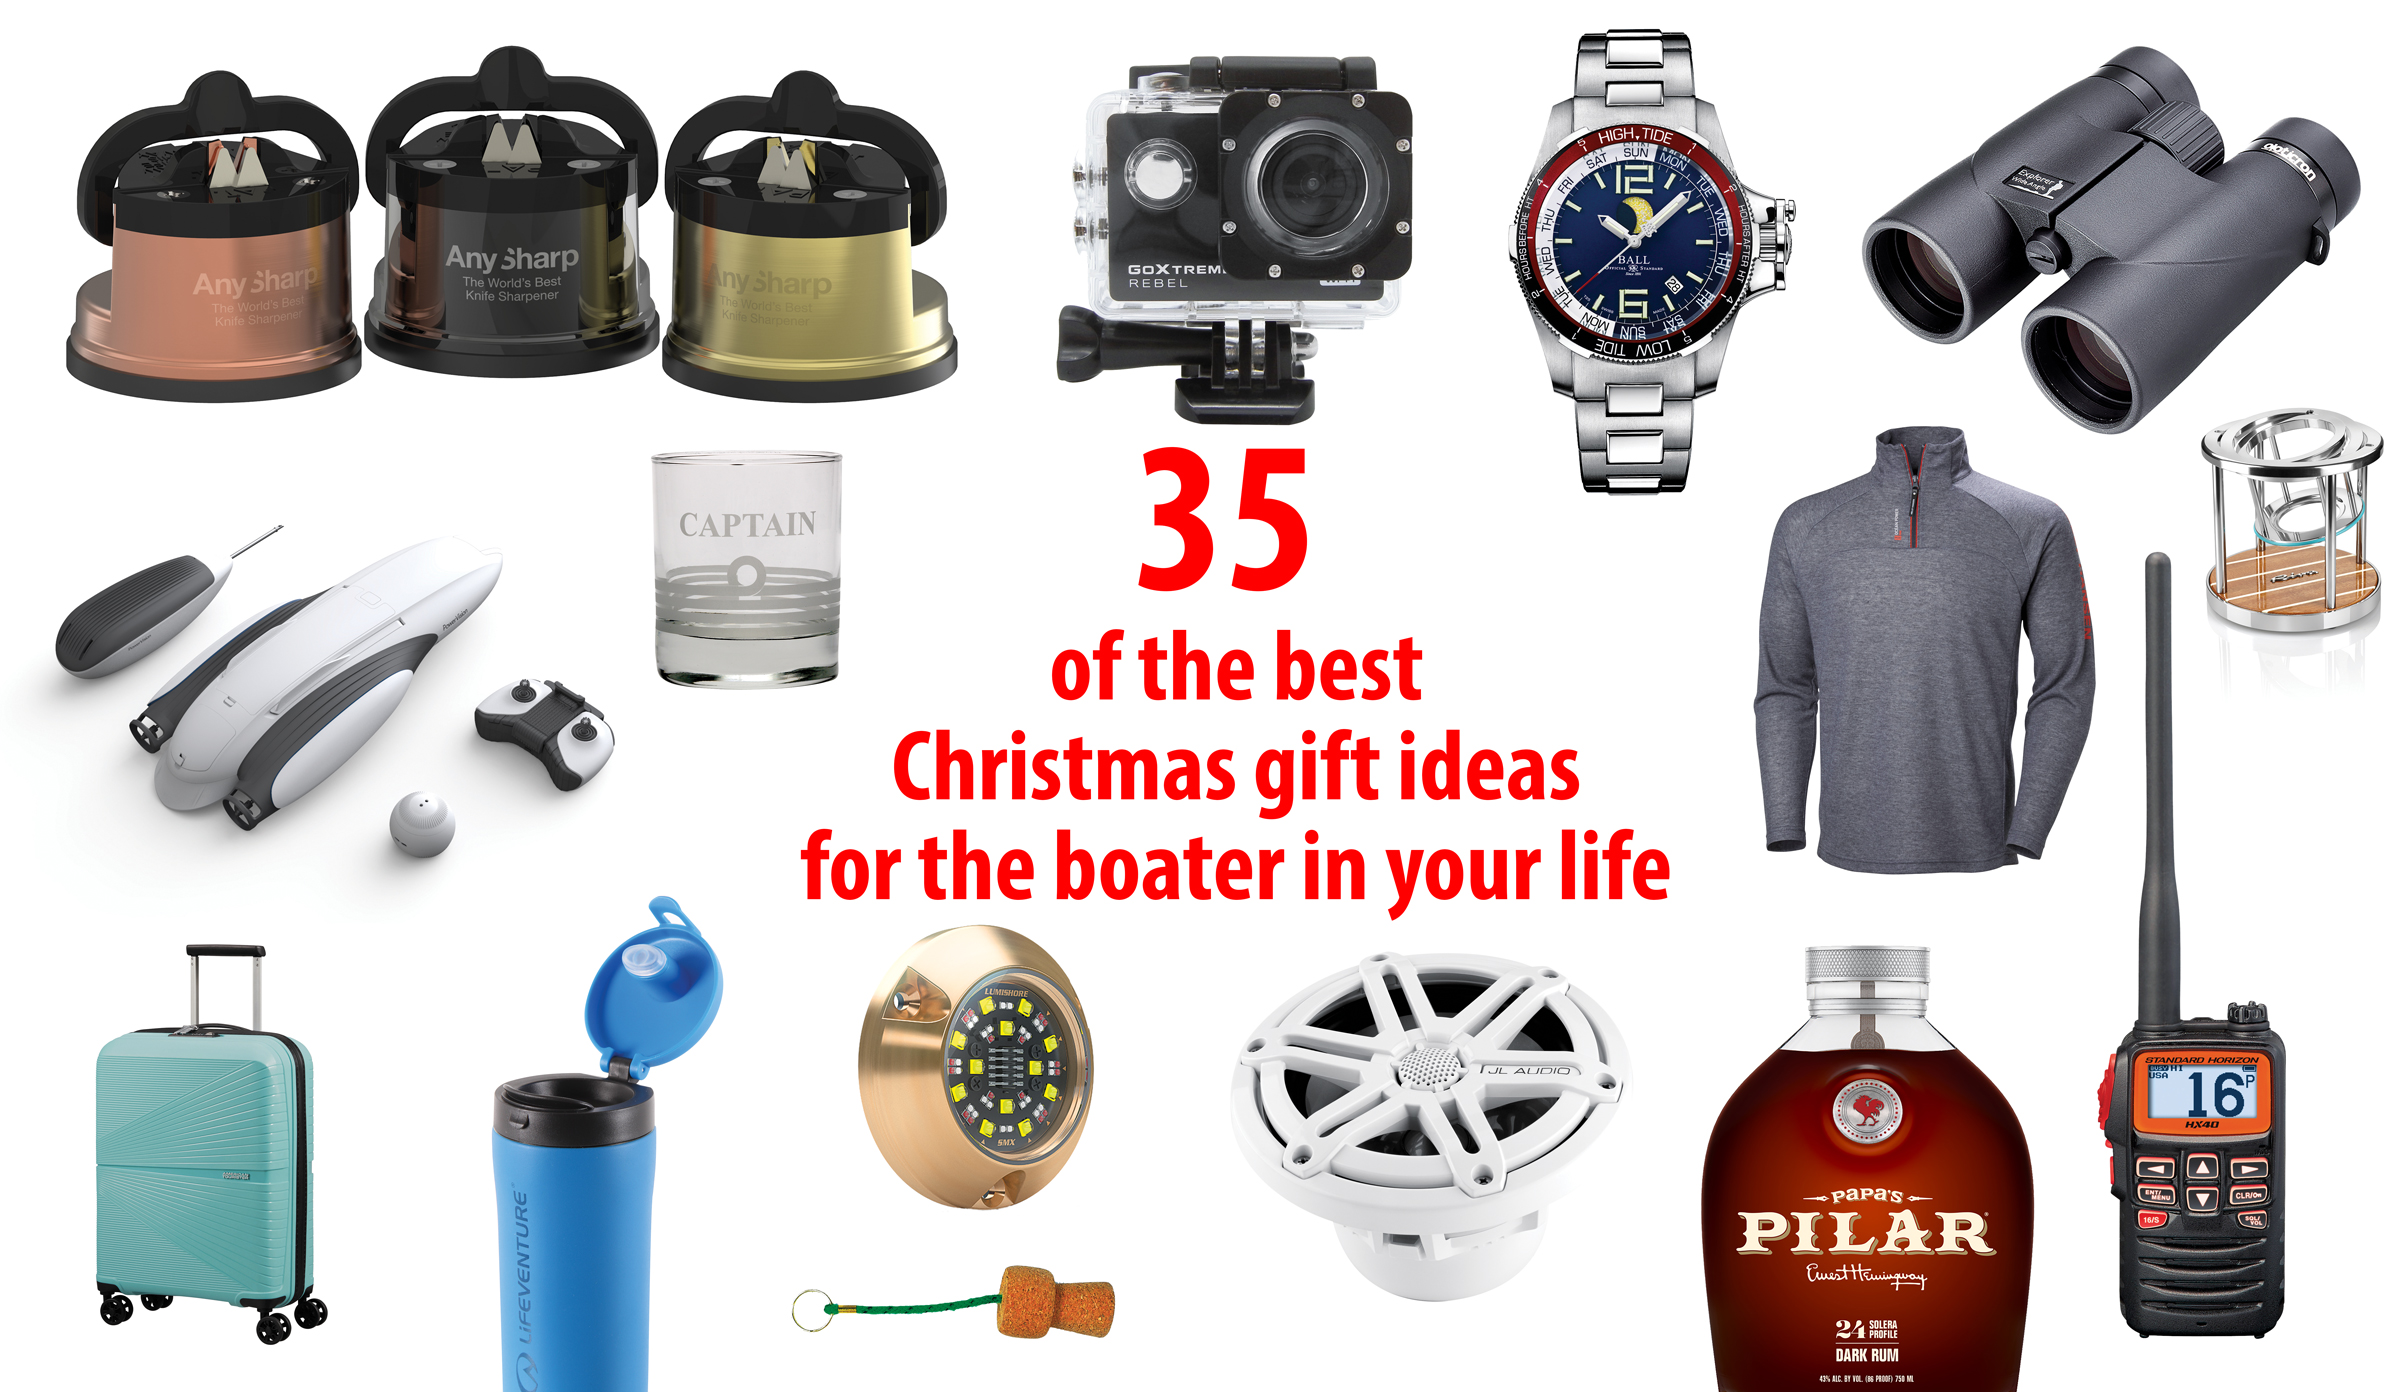 Christmas gift ideas for the boater